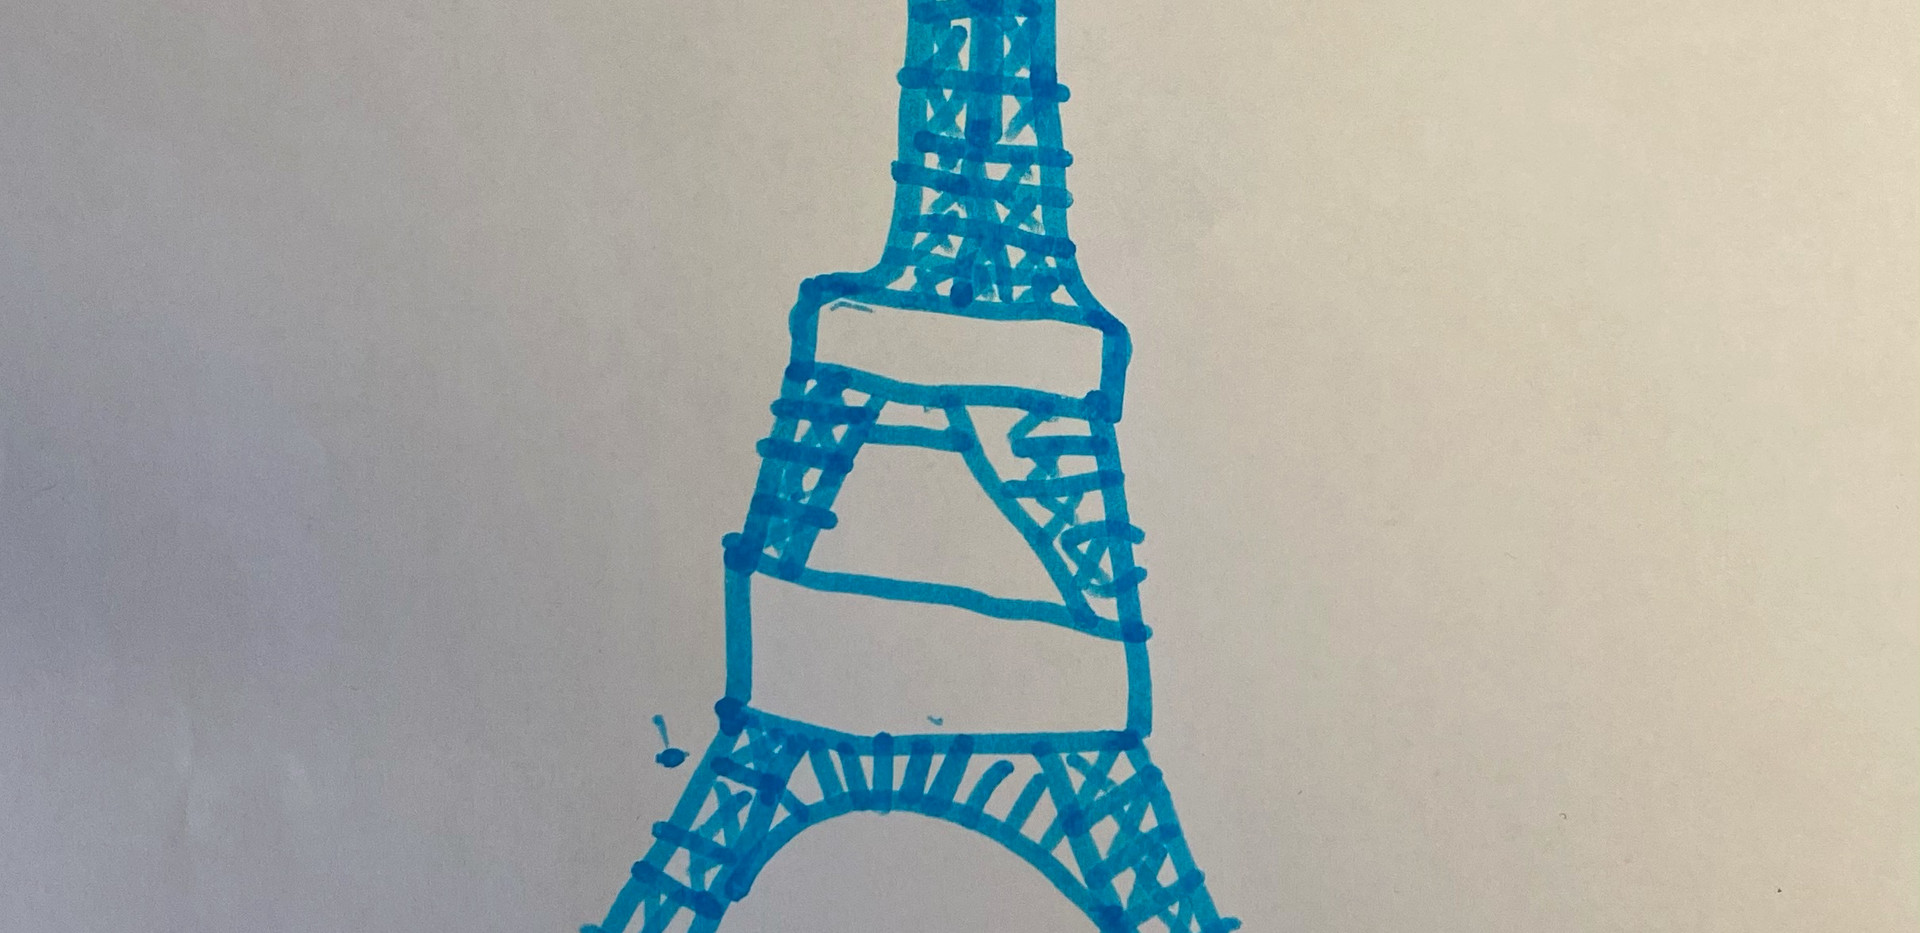 William Tour Eiffel.jpeg